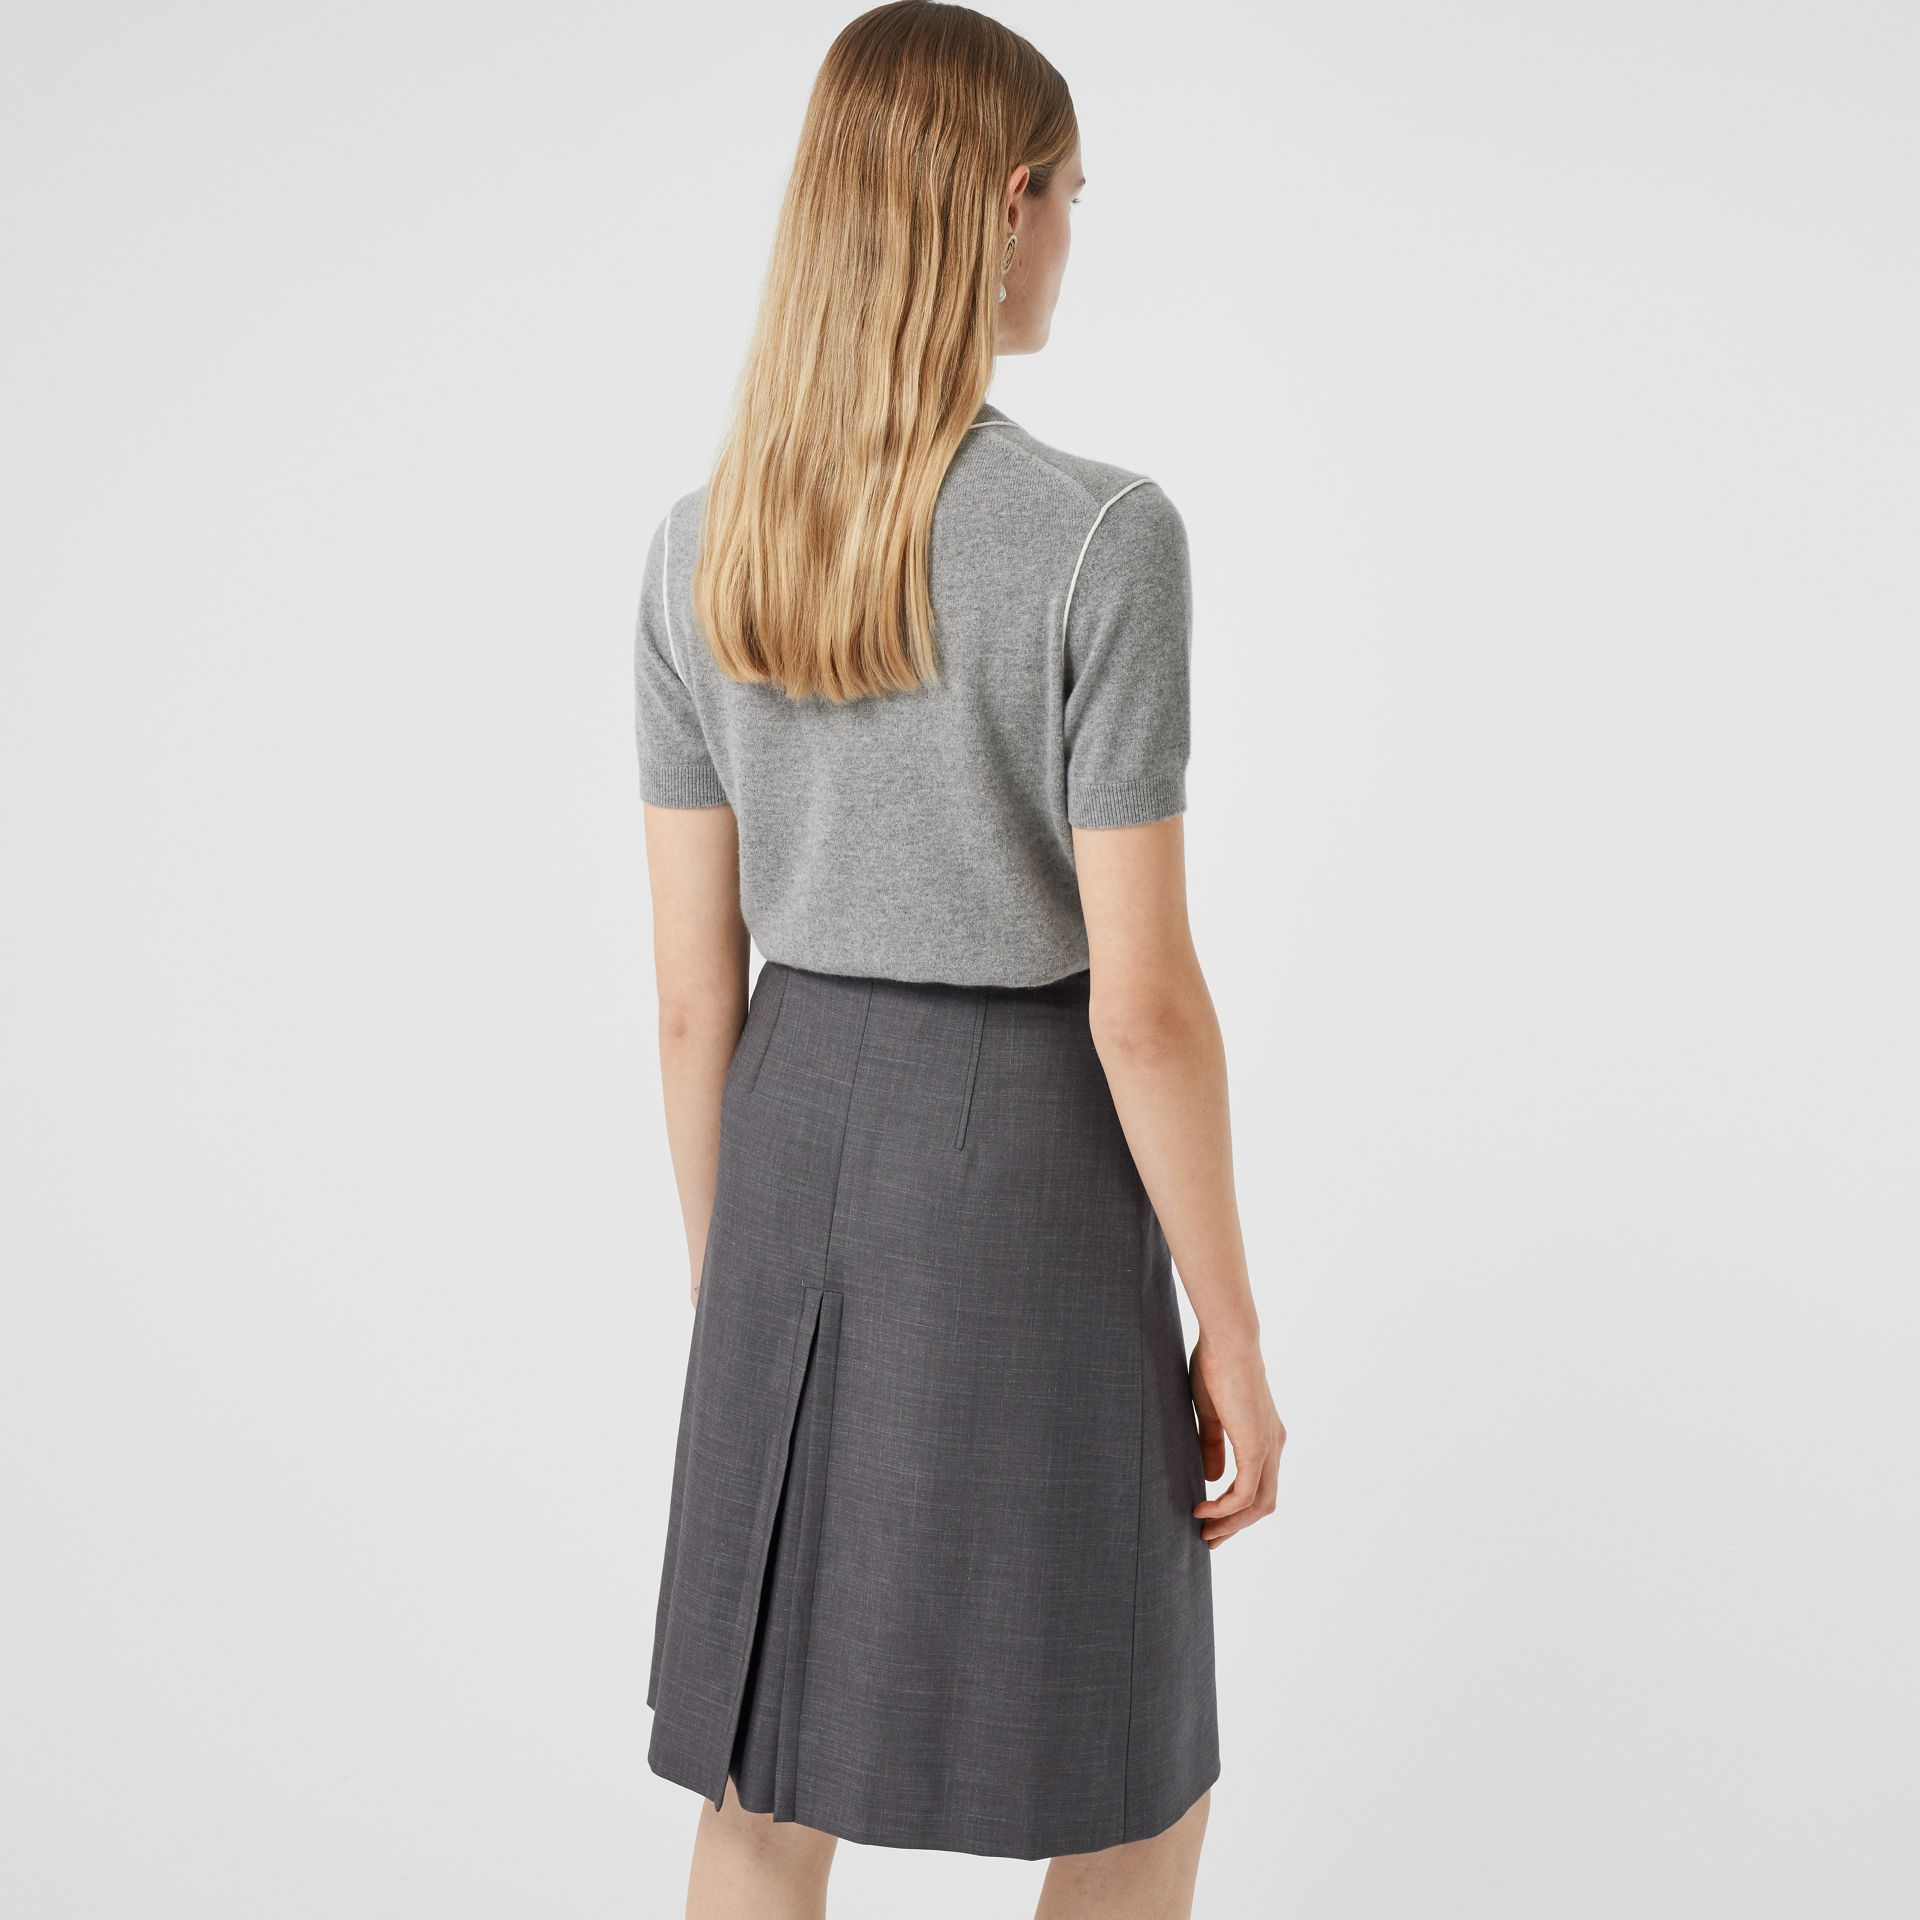 Short-sleeve Monogram Motif Cashmere Top in Grey Melange - Women | Burberry Australia - gallery image 2